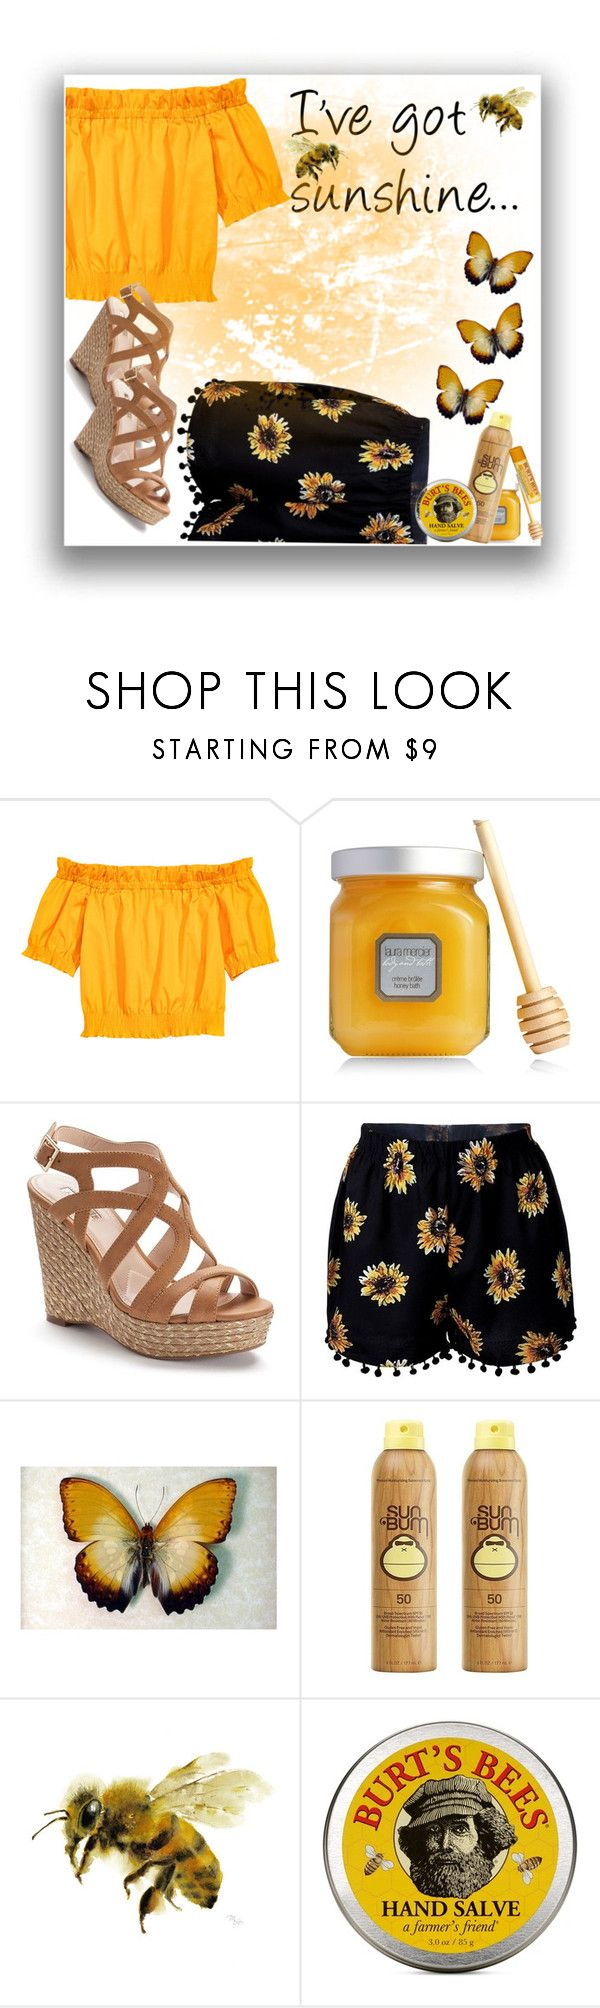 """YoU cAn'T bRiNg Me DoWn"" by smiling-sam on Polyvore featuring Laura Mercier, Jennifer Lopez, Sun Bum and Burt's Bees"